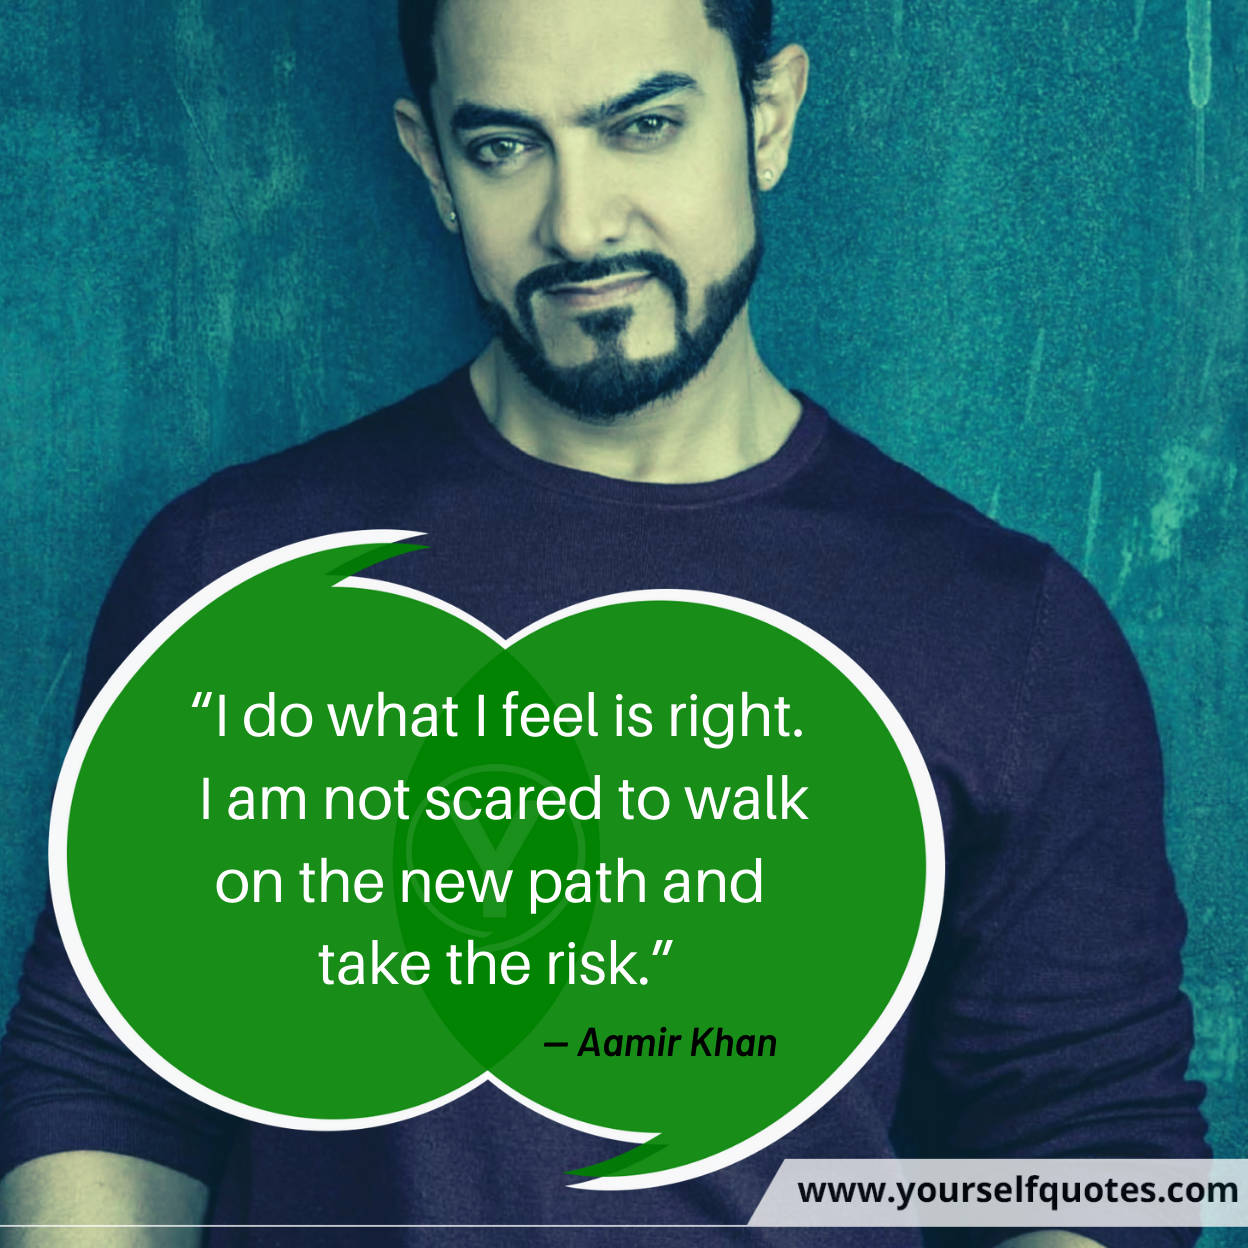 Quotes Aamir Khan Sayings Images